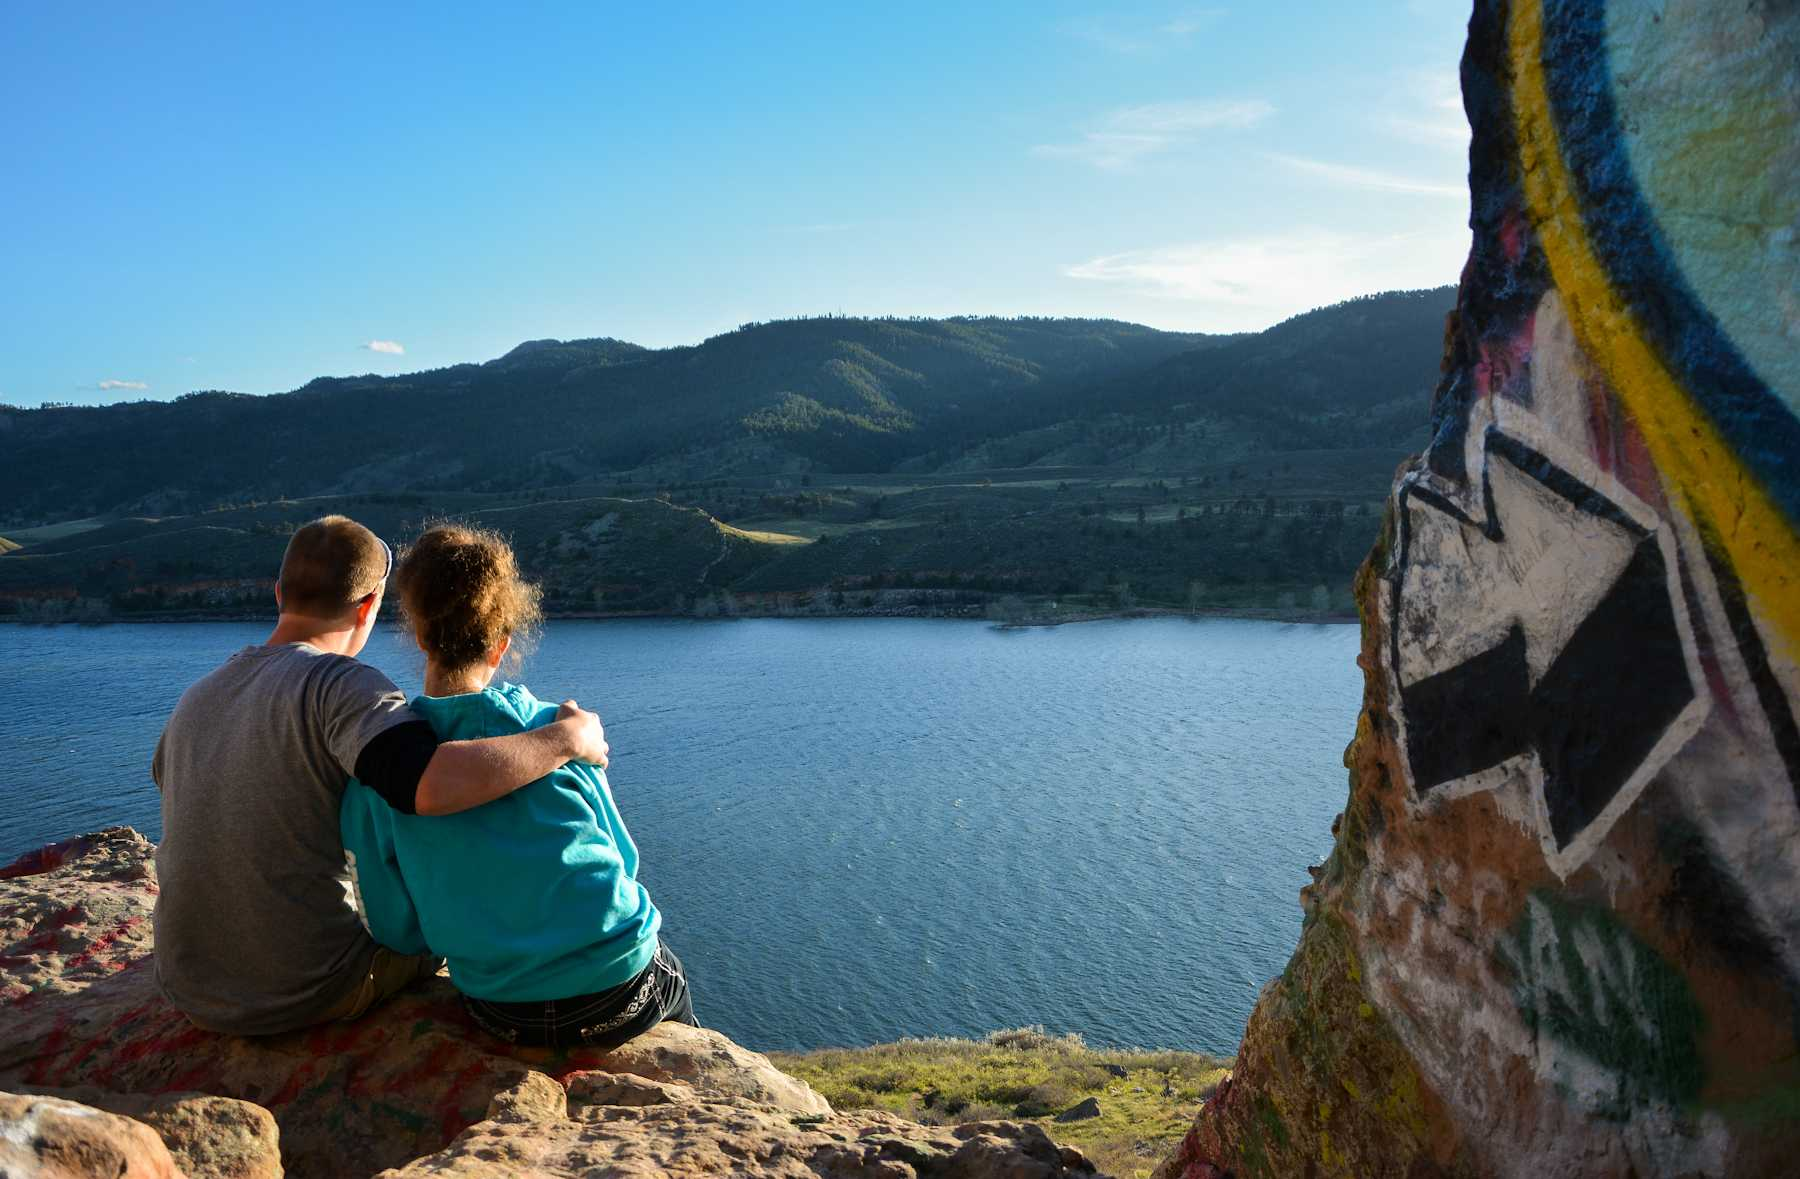 With summer closing in fast, couples are headed outdoors for their dates. Horsetooth Reservoir is a popular place to enjoy the sun, the water, the mountains, and the stars all in one day.